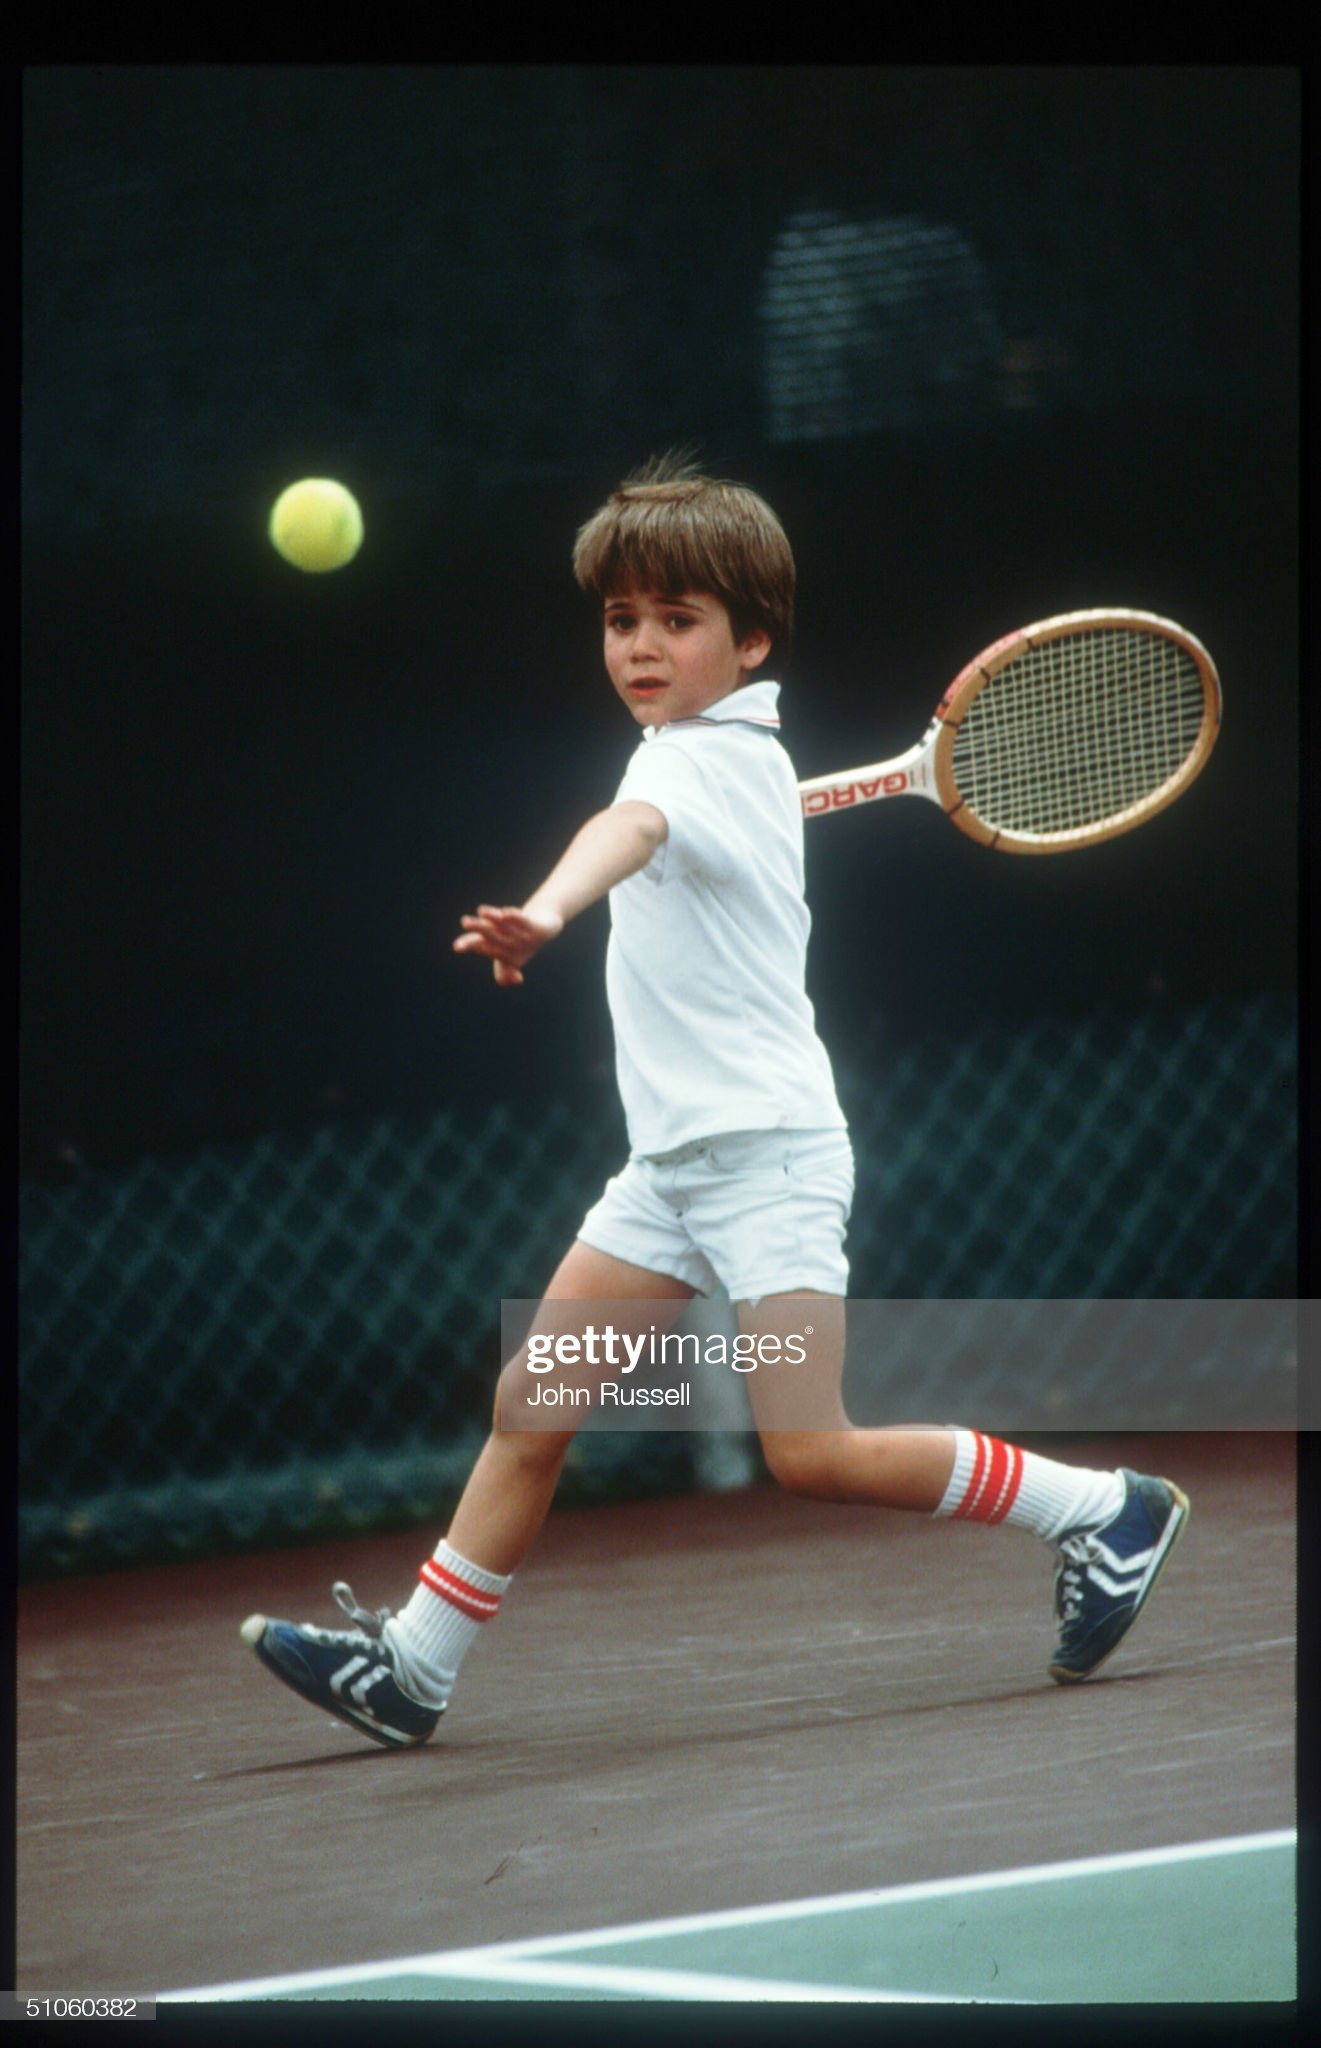 Seven Year Old Andre Agassi Plays Tennis April 1977 In Las Vegas Nv Agassi Becomes One : News Photo